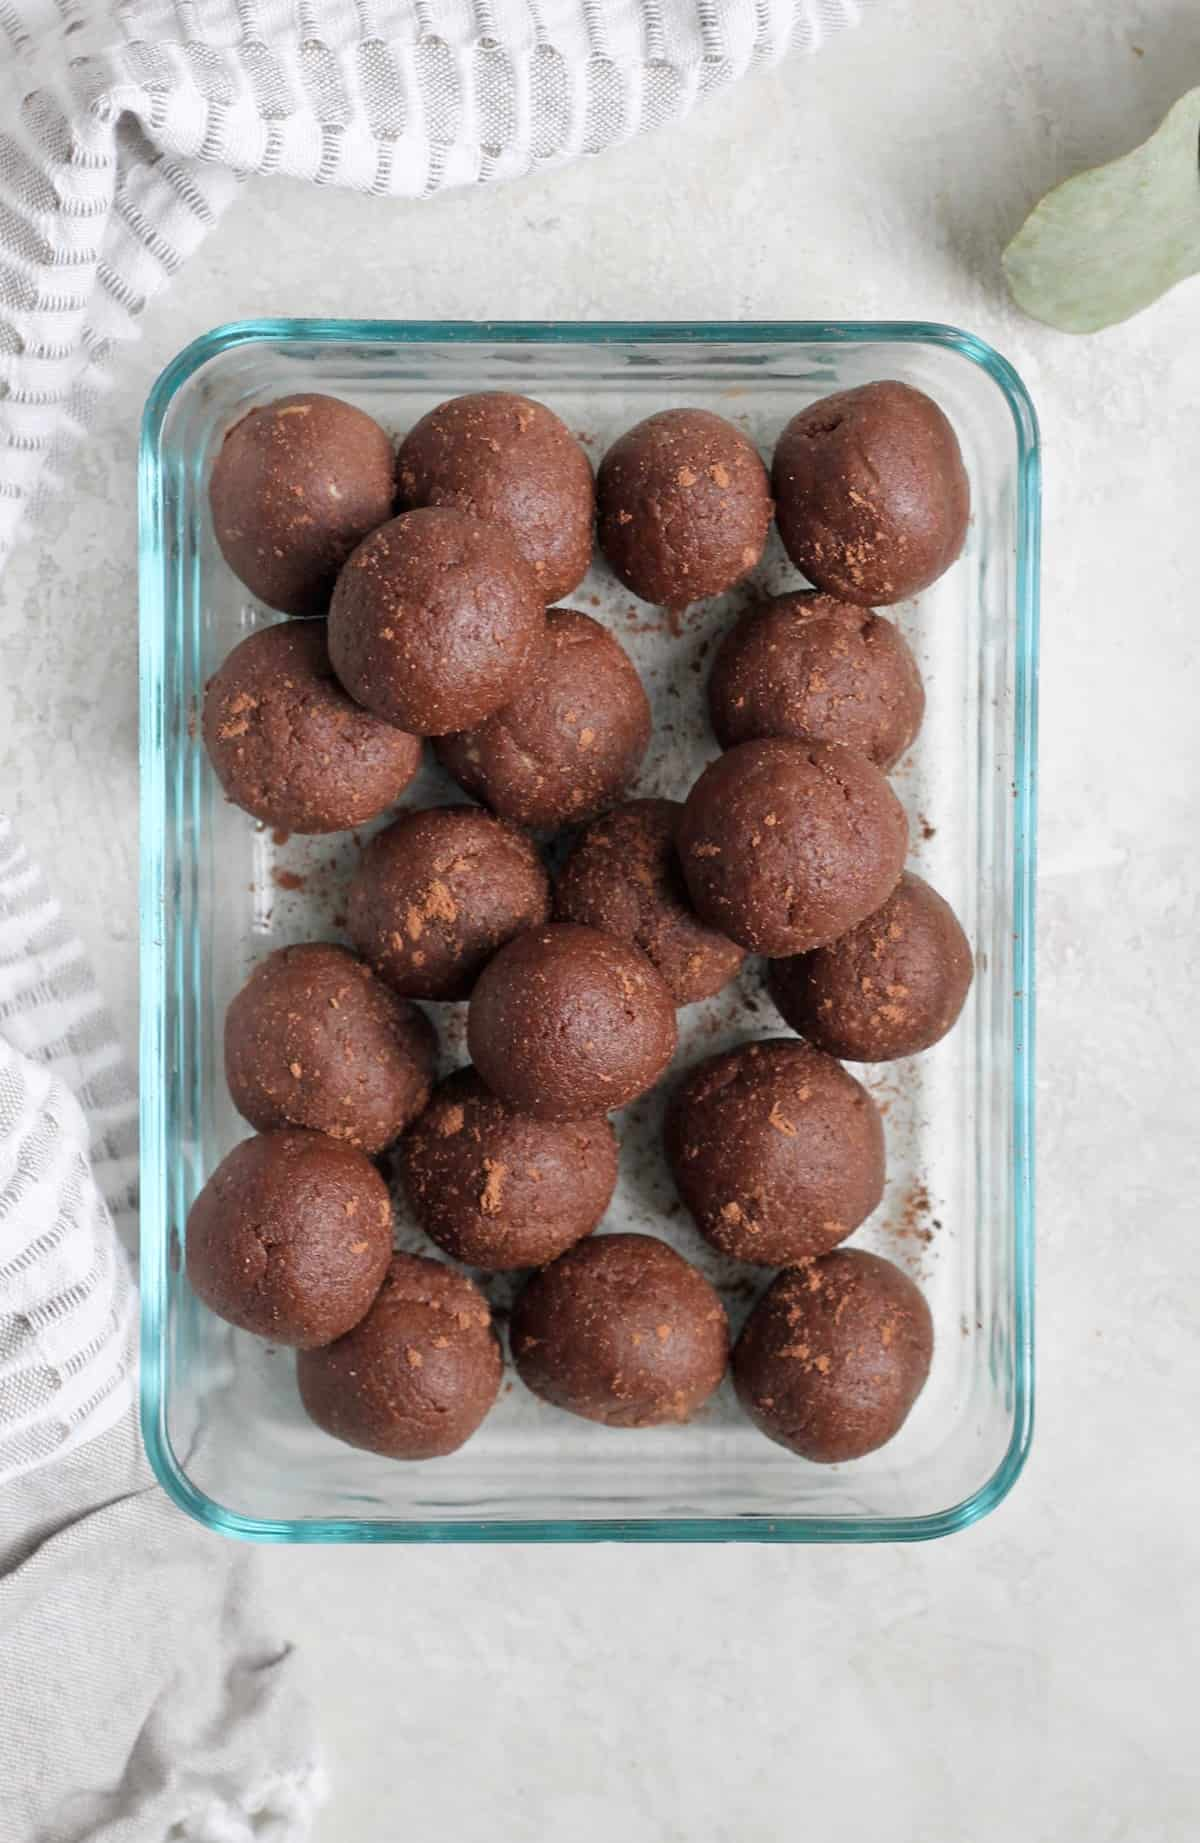 glass dish of chocolate balls